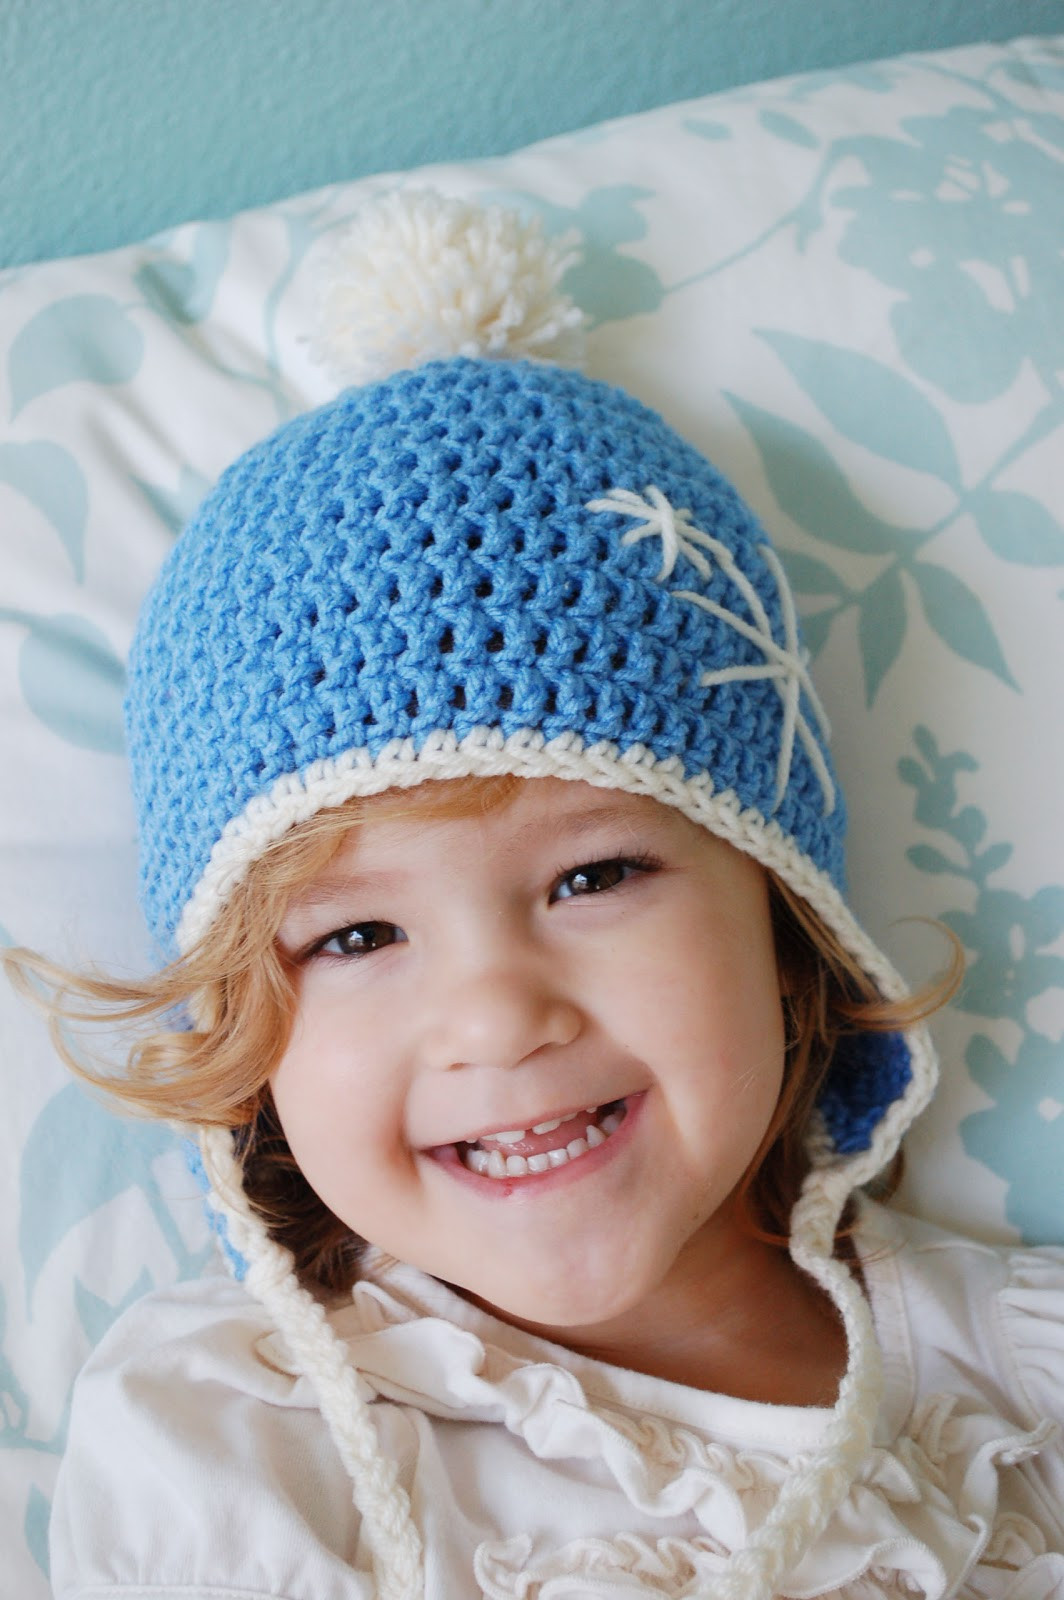 Free Crochet Baby Hat Patterns Fresh Free Crochet Patterns for Baby Hats with Ear Flaps Of Adorable 48 Pics Free Crochet Baby Hat Patterns